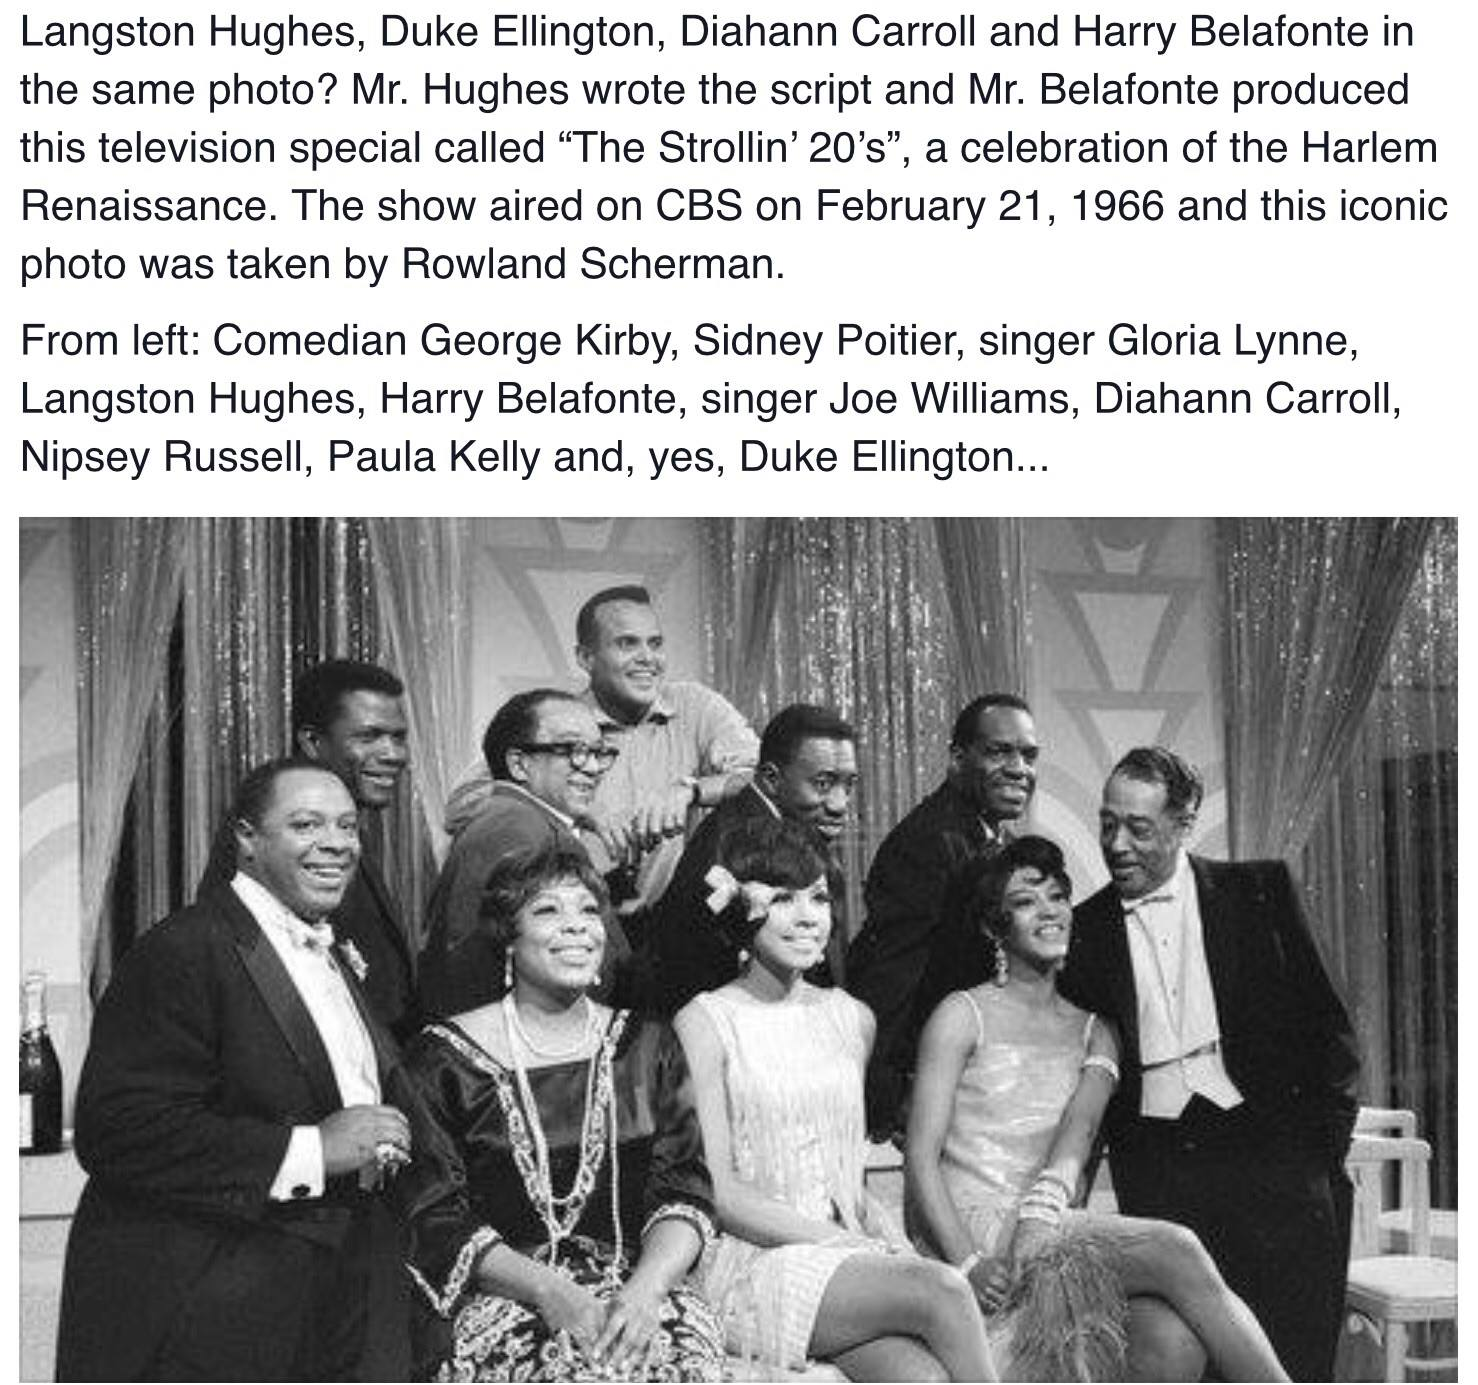 duke ellington and the harlem renaissance How did duke ellington influrnce the harlam renaissance the harlem renessaince had a big impact on sports because before the jim crow law was passed to keep blacks from playing most sports, the blacks were taking them over, so when that happened, suddenly they all said,yes, we can go.